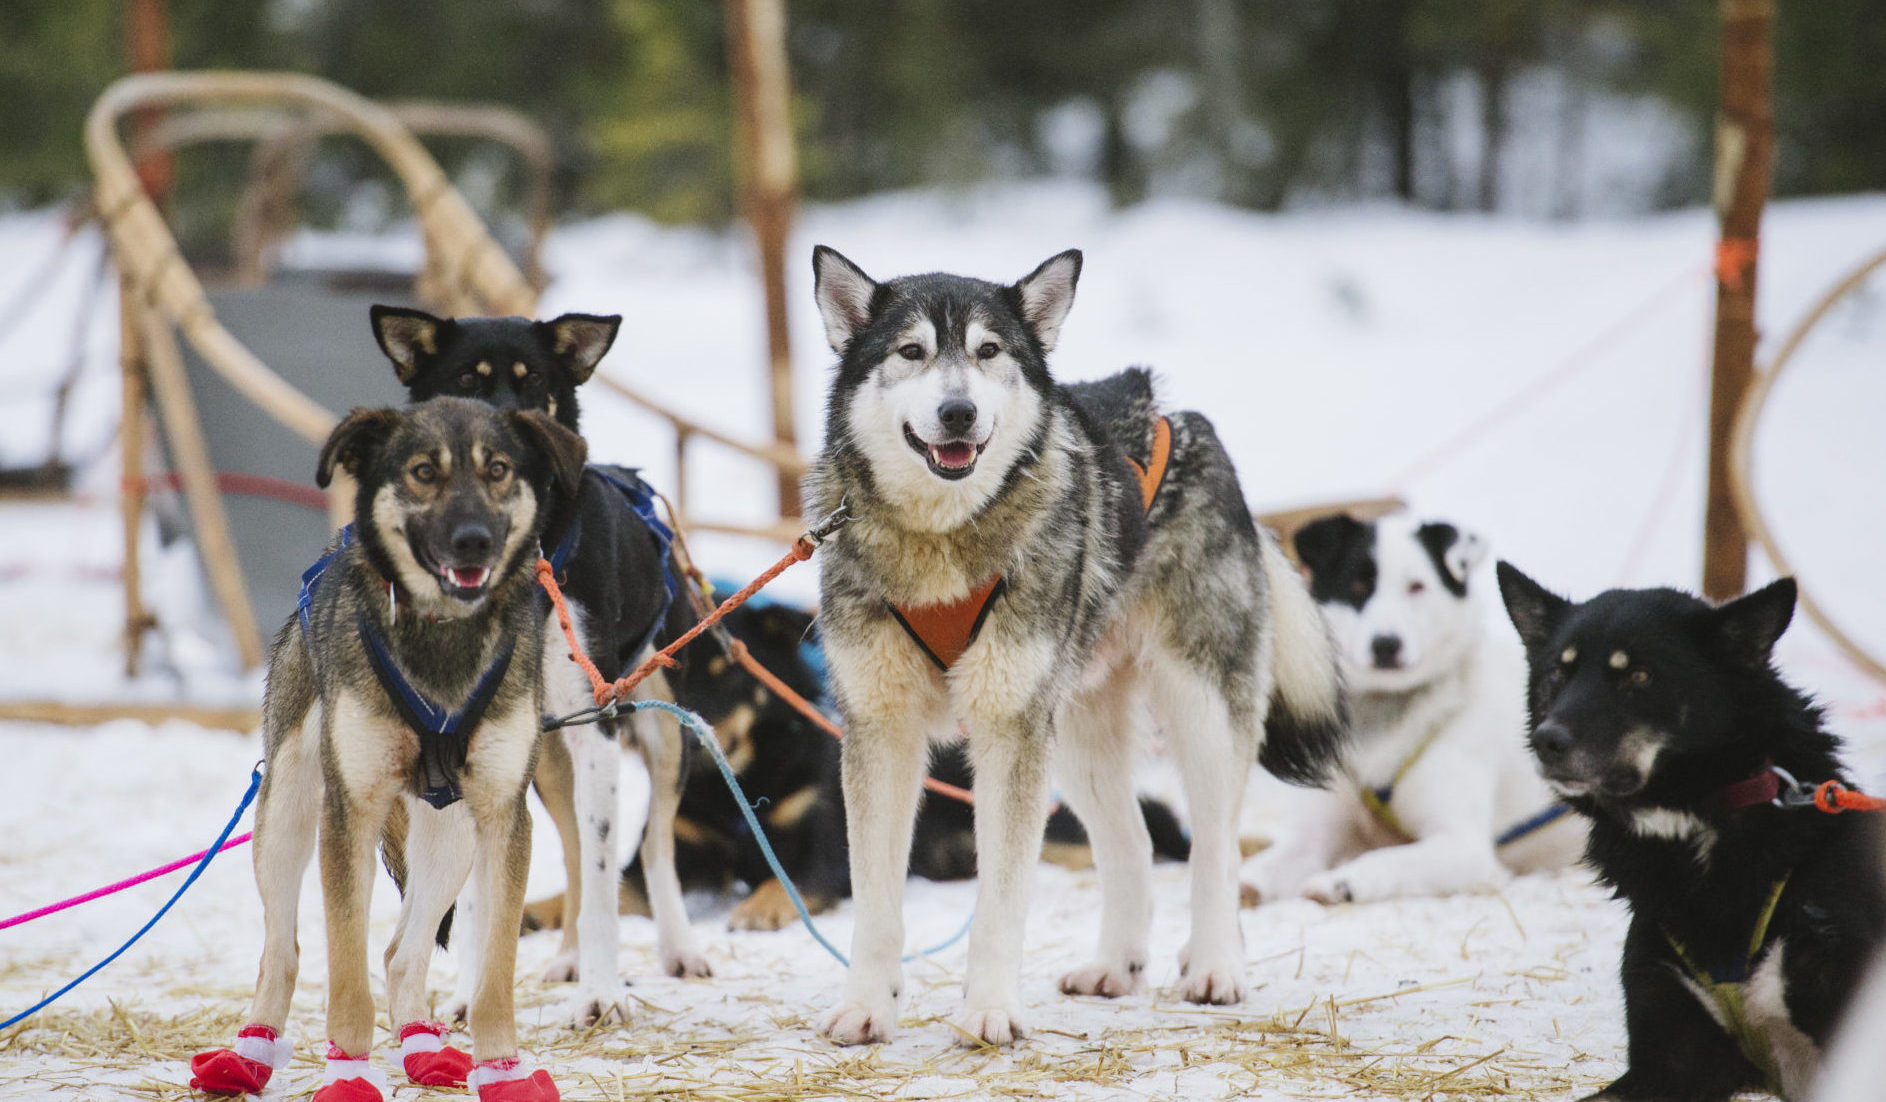 6dbd13dbac Visit a Husky Farm and 2 Hour Husky Safari - Lapland Welcome in Finland